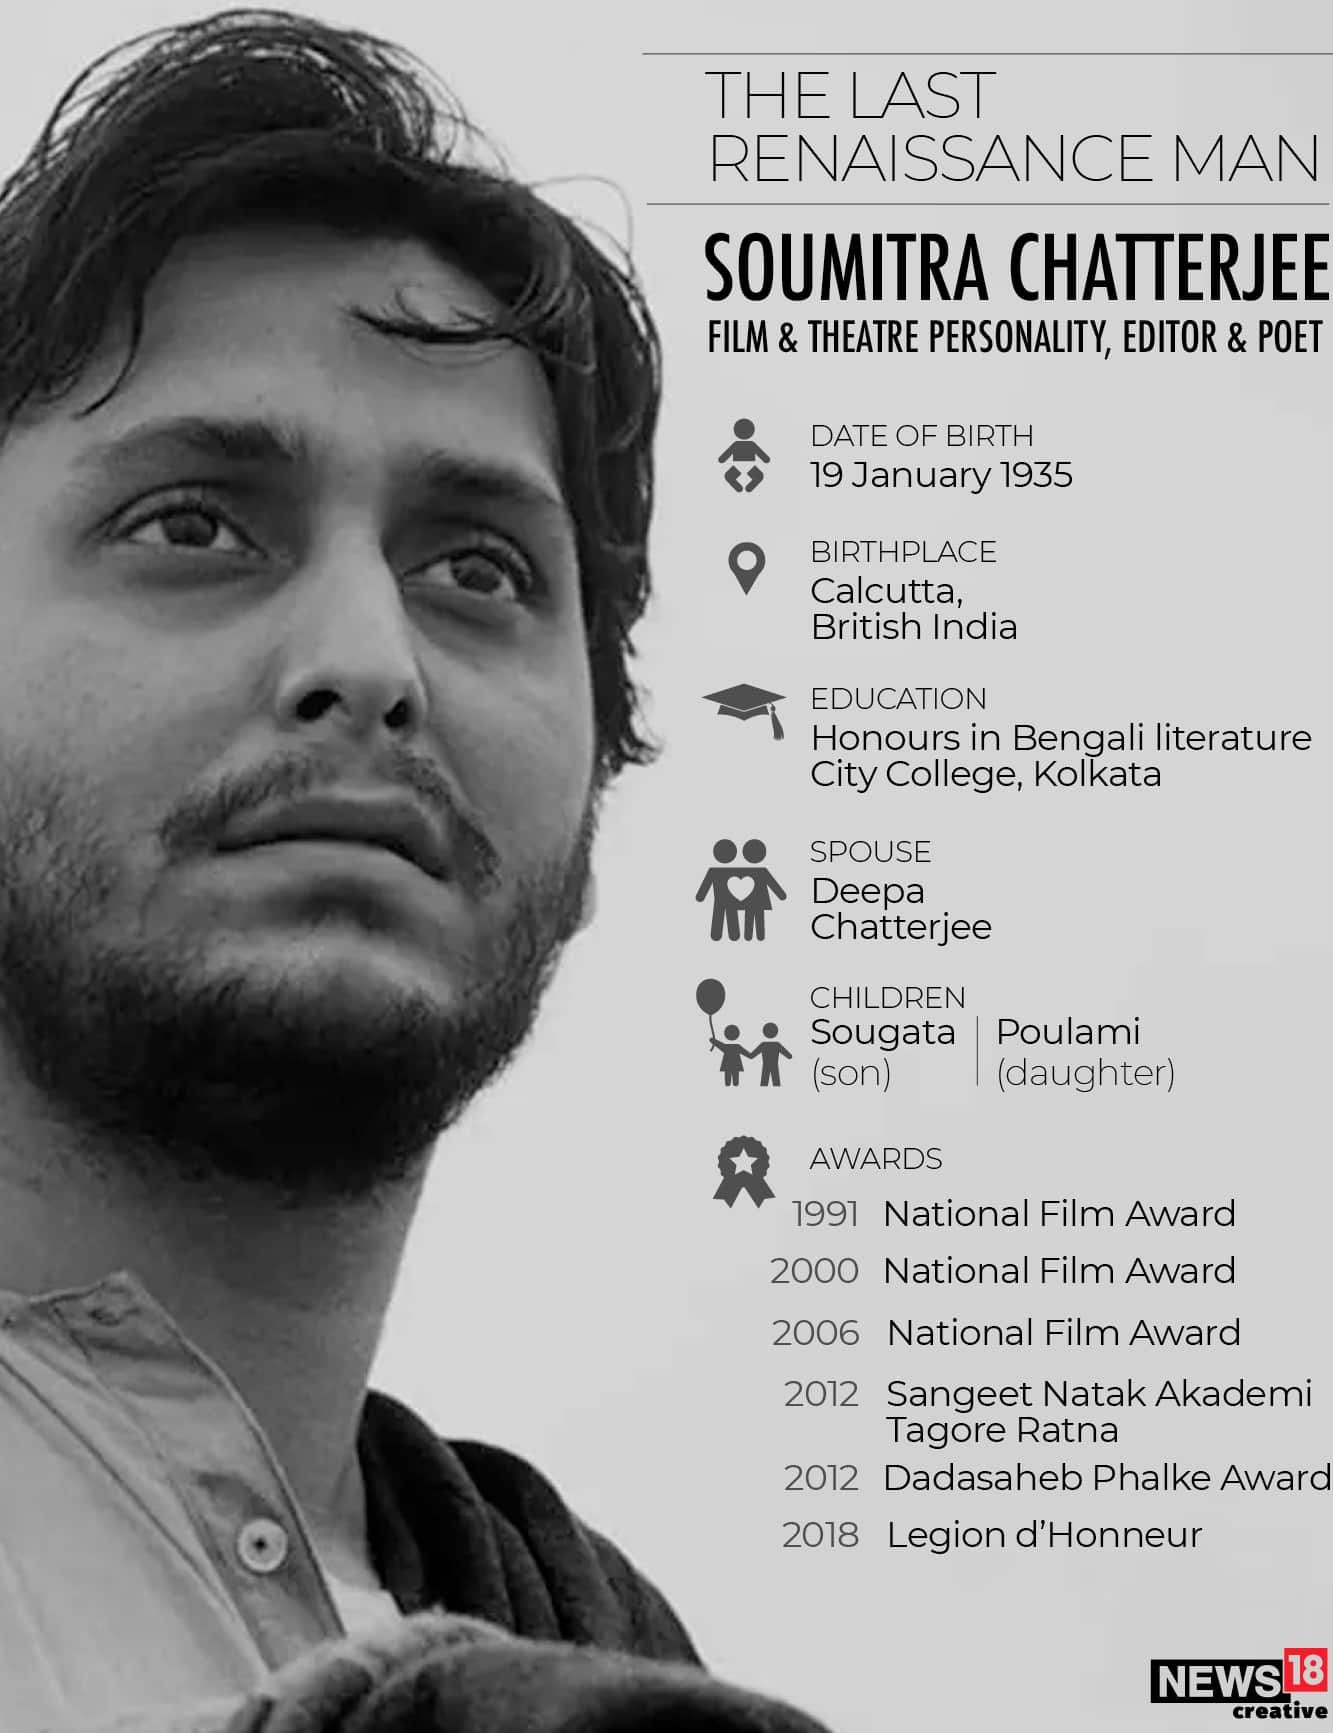 Veteran Bengali actor Soumitra Chatterjee dies after battle with COVID-19